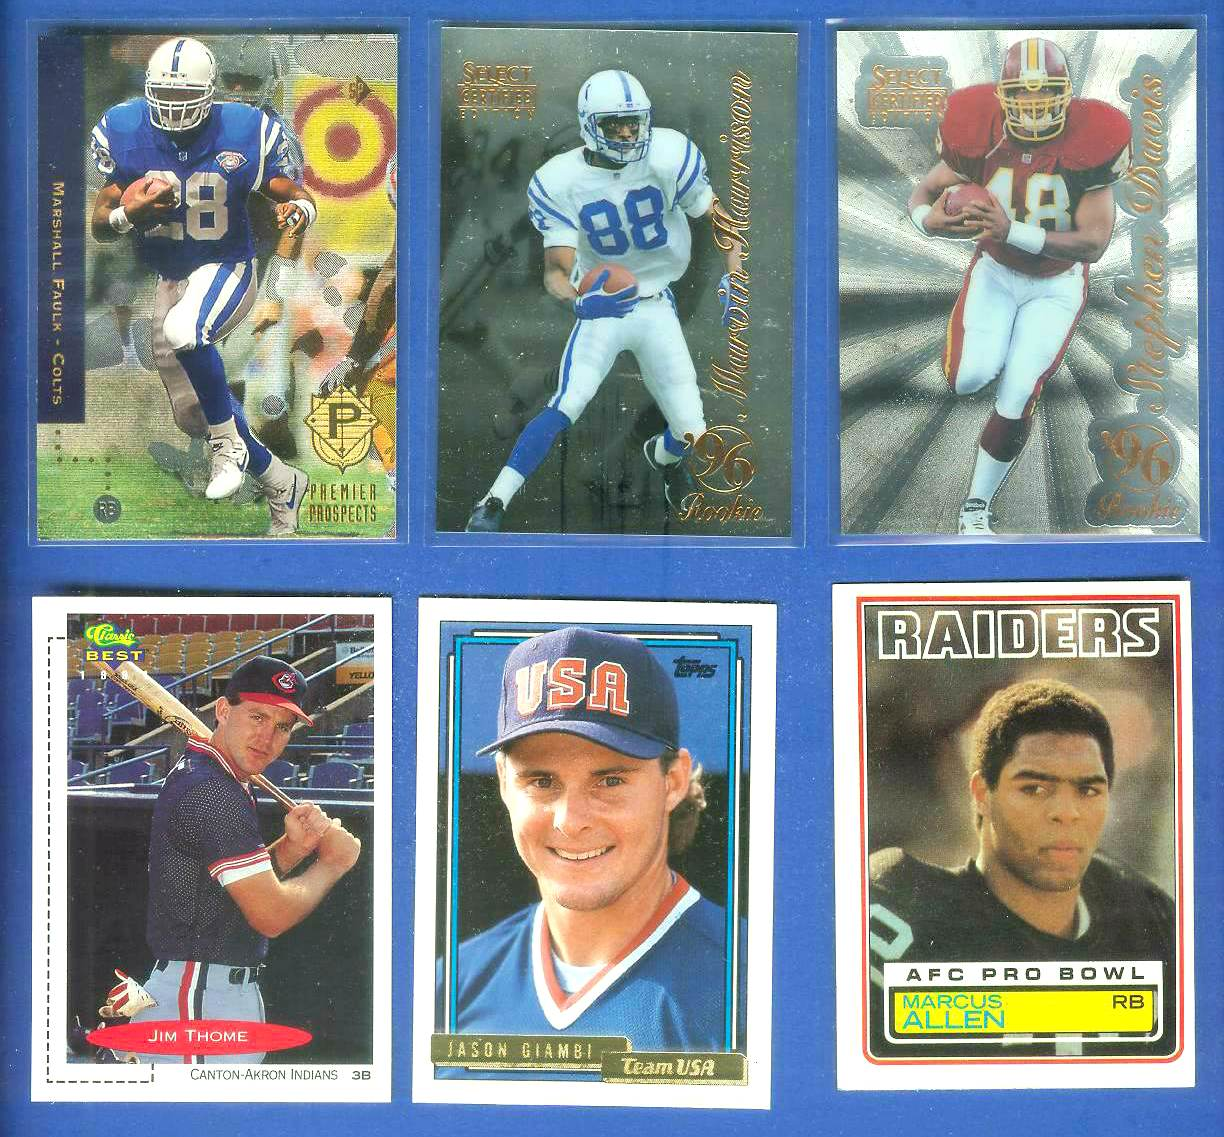 1994 SP FB #3 Marshall Faulk FOIL ROOKIE [#a] (Colts) Baseball cards value